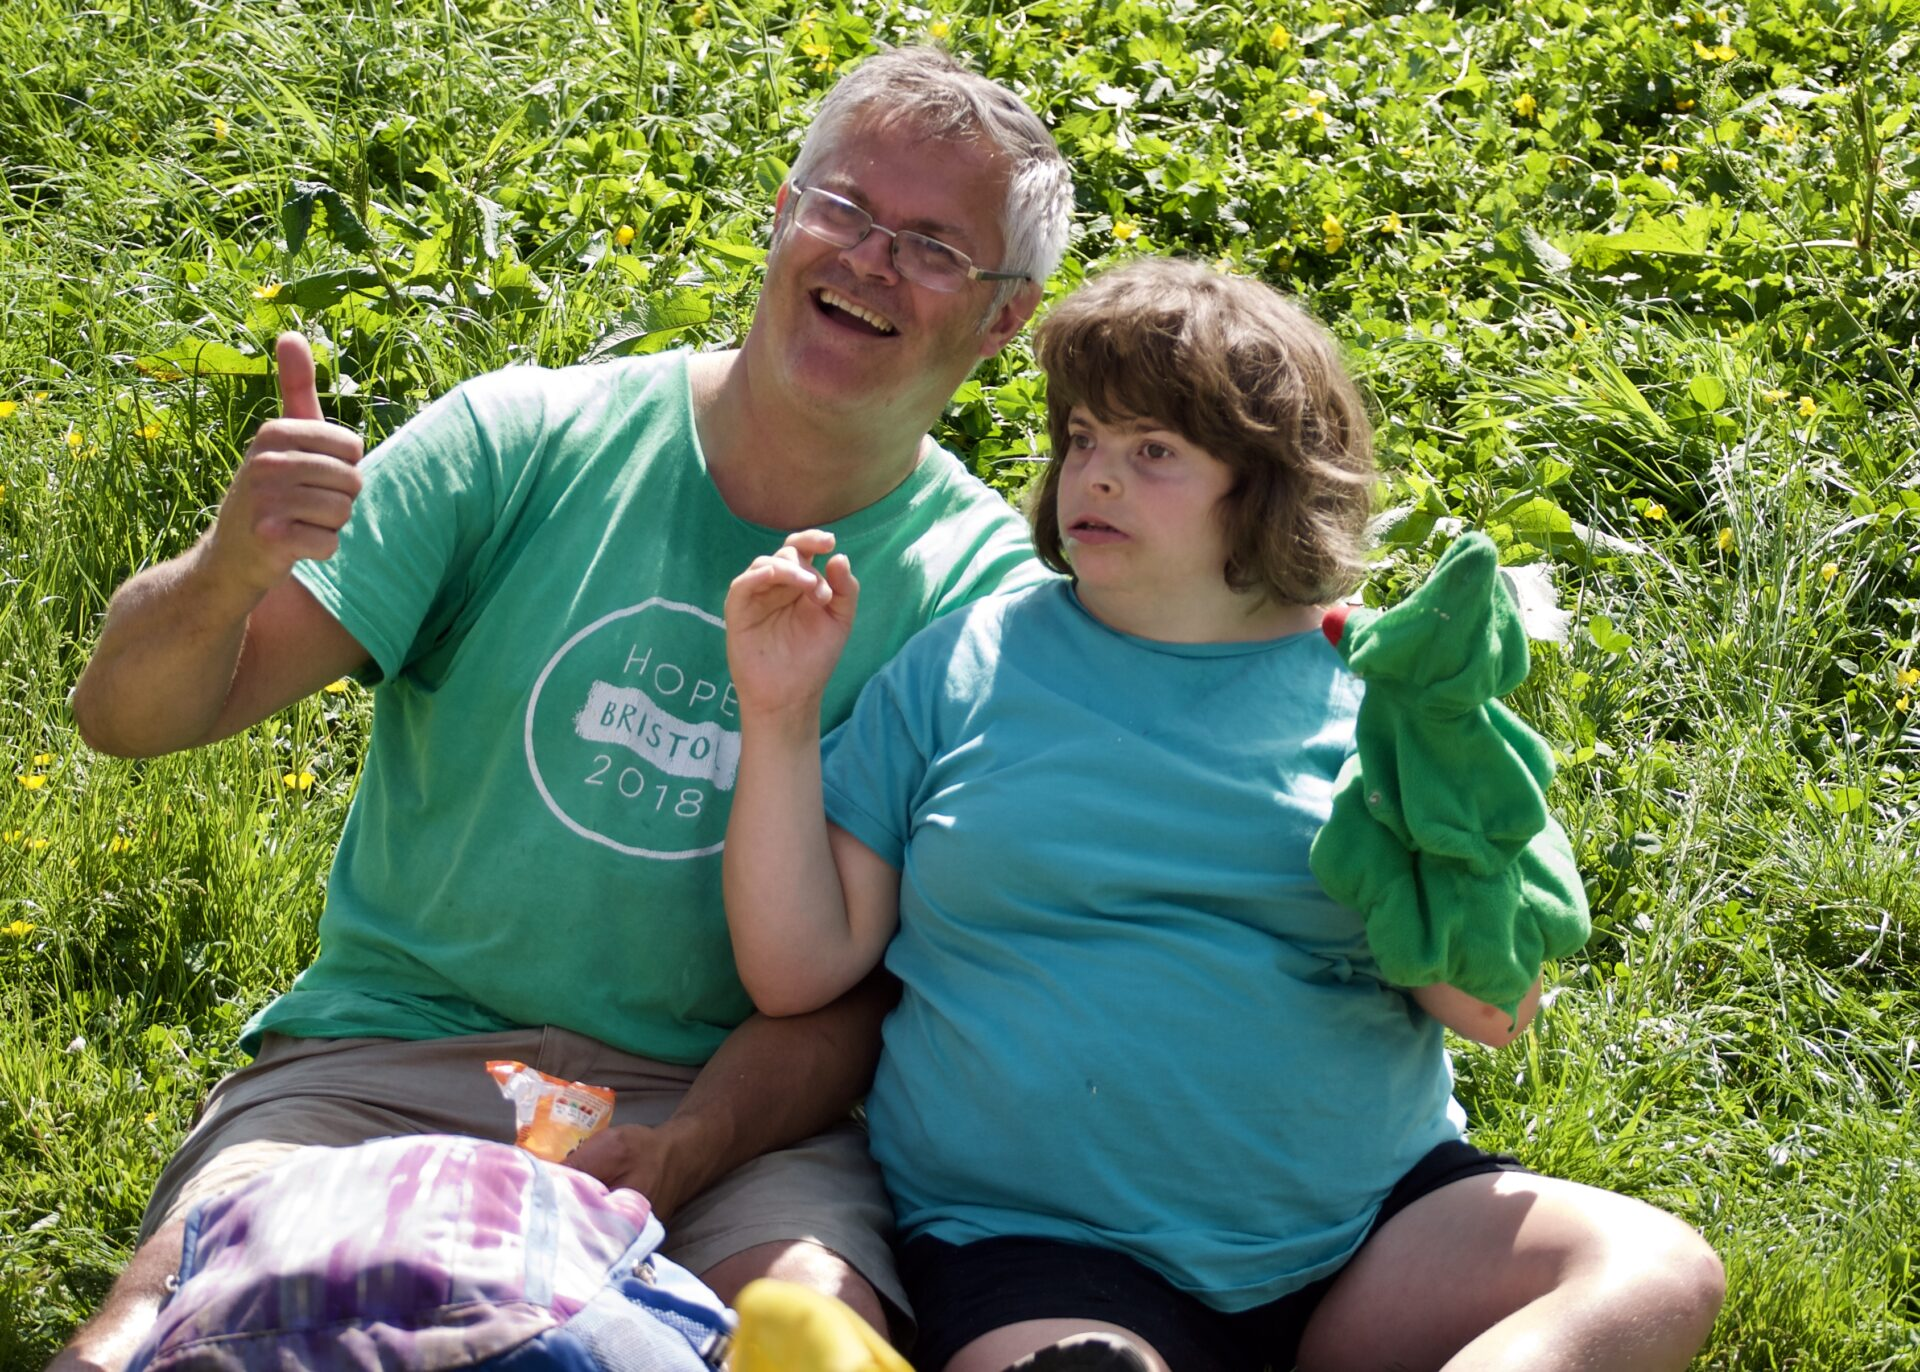 Supporting children with additional needs